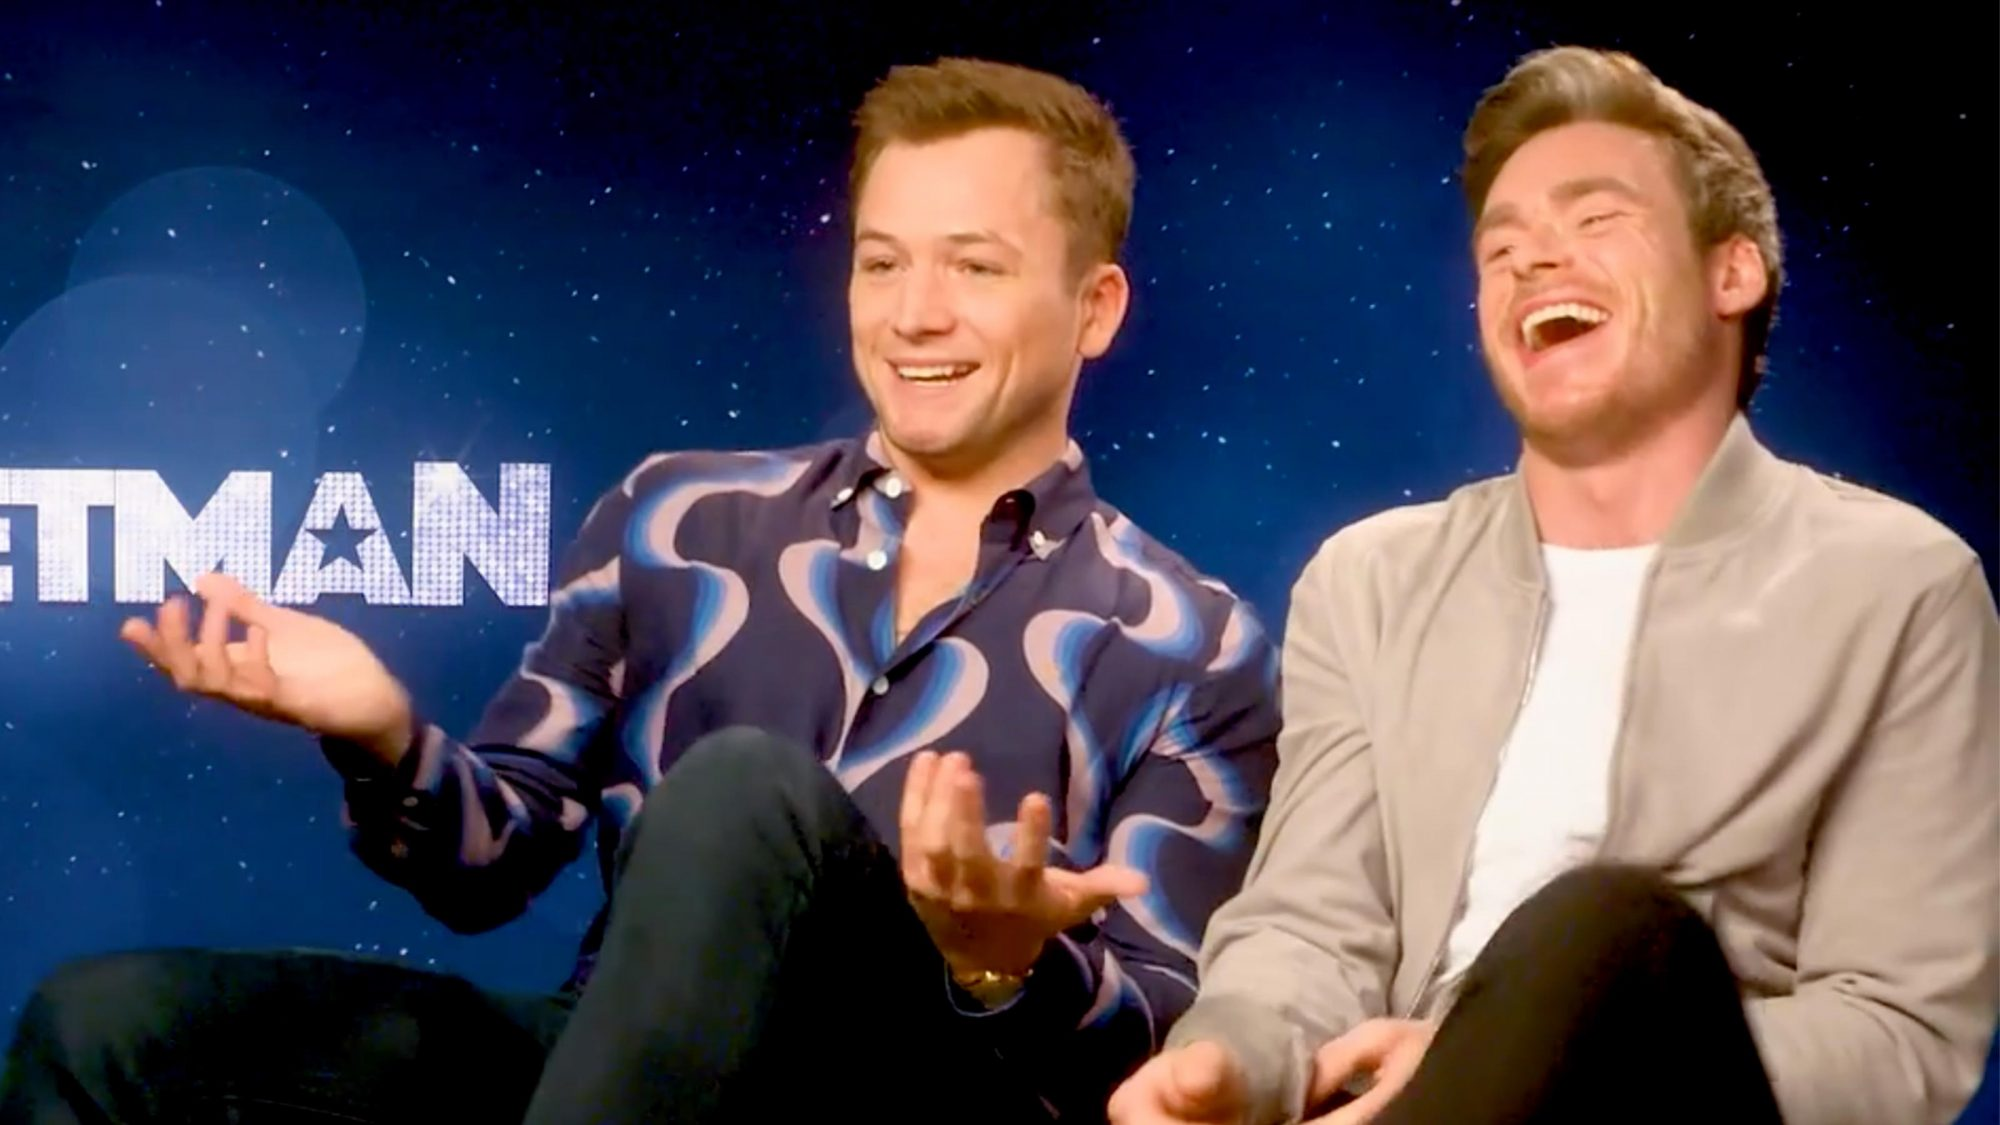 Rocketman EW Interview (screen grab) Taron Egerton and Richard Madden CR: EW